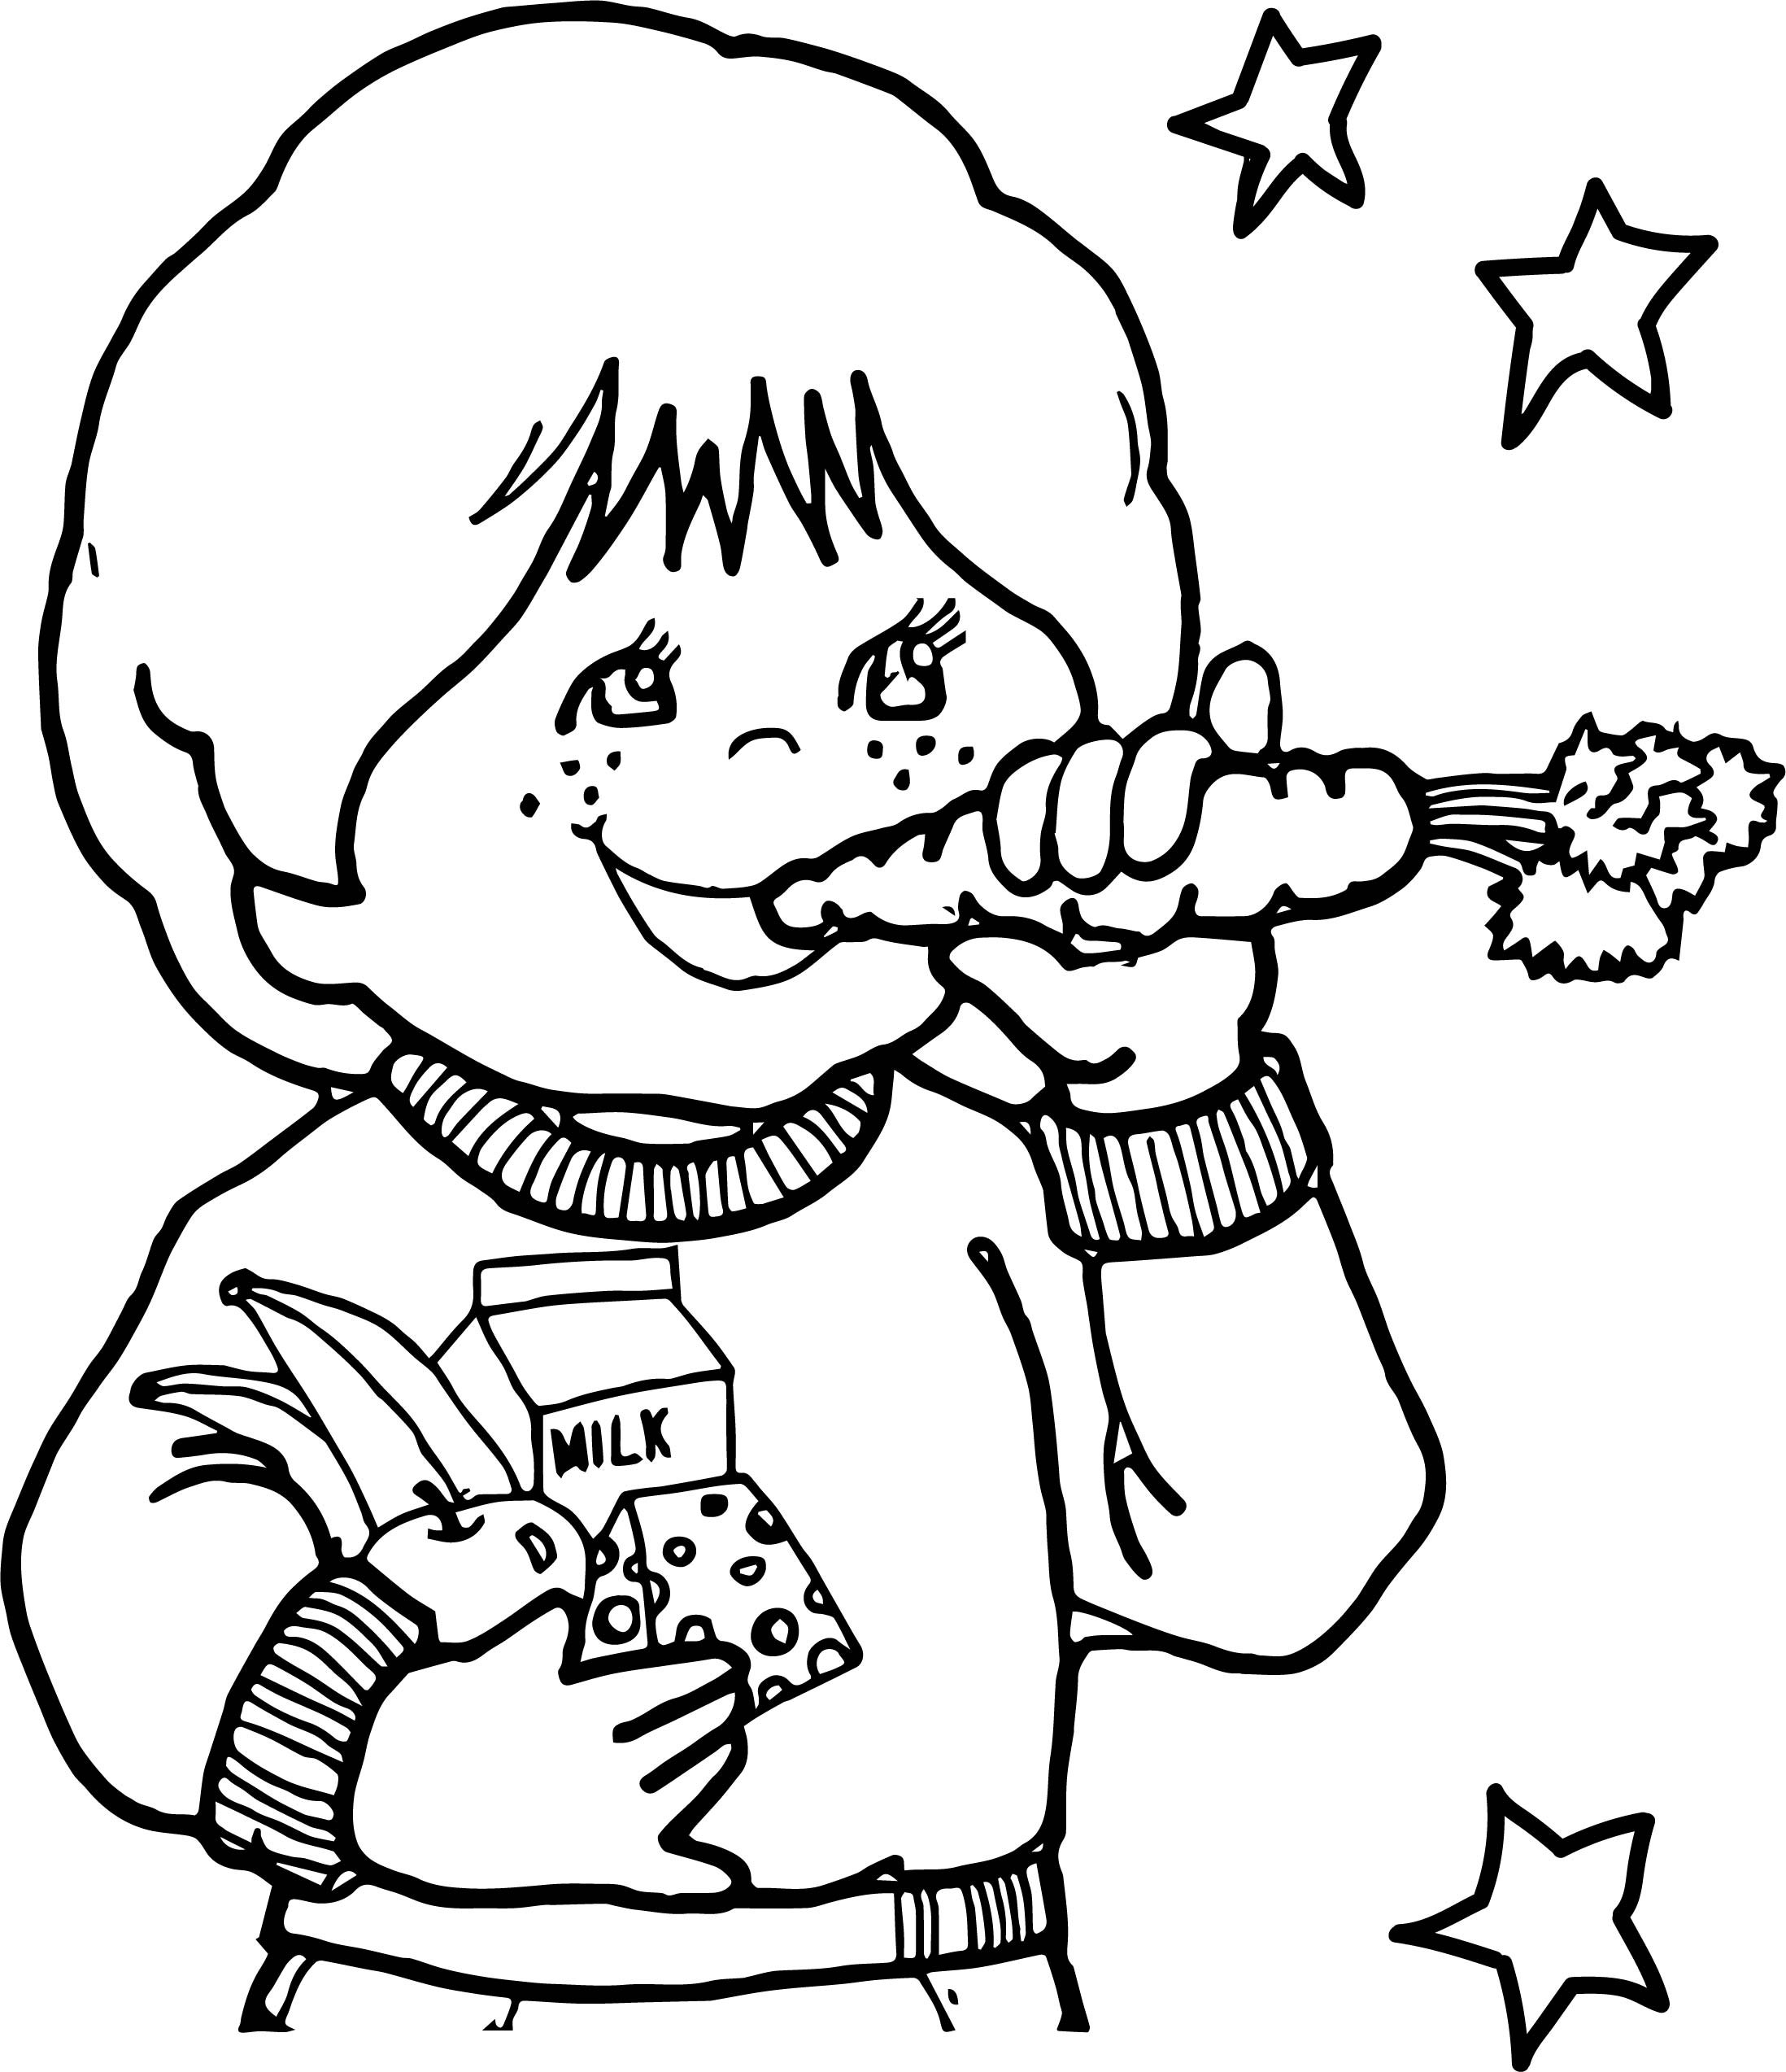 Children Eating Healthy Coloring Page | Wecoloringpage